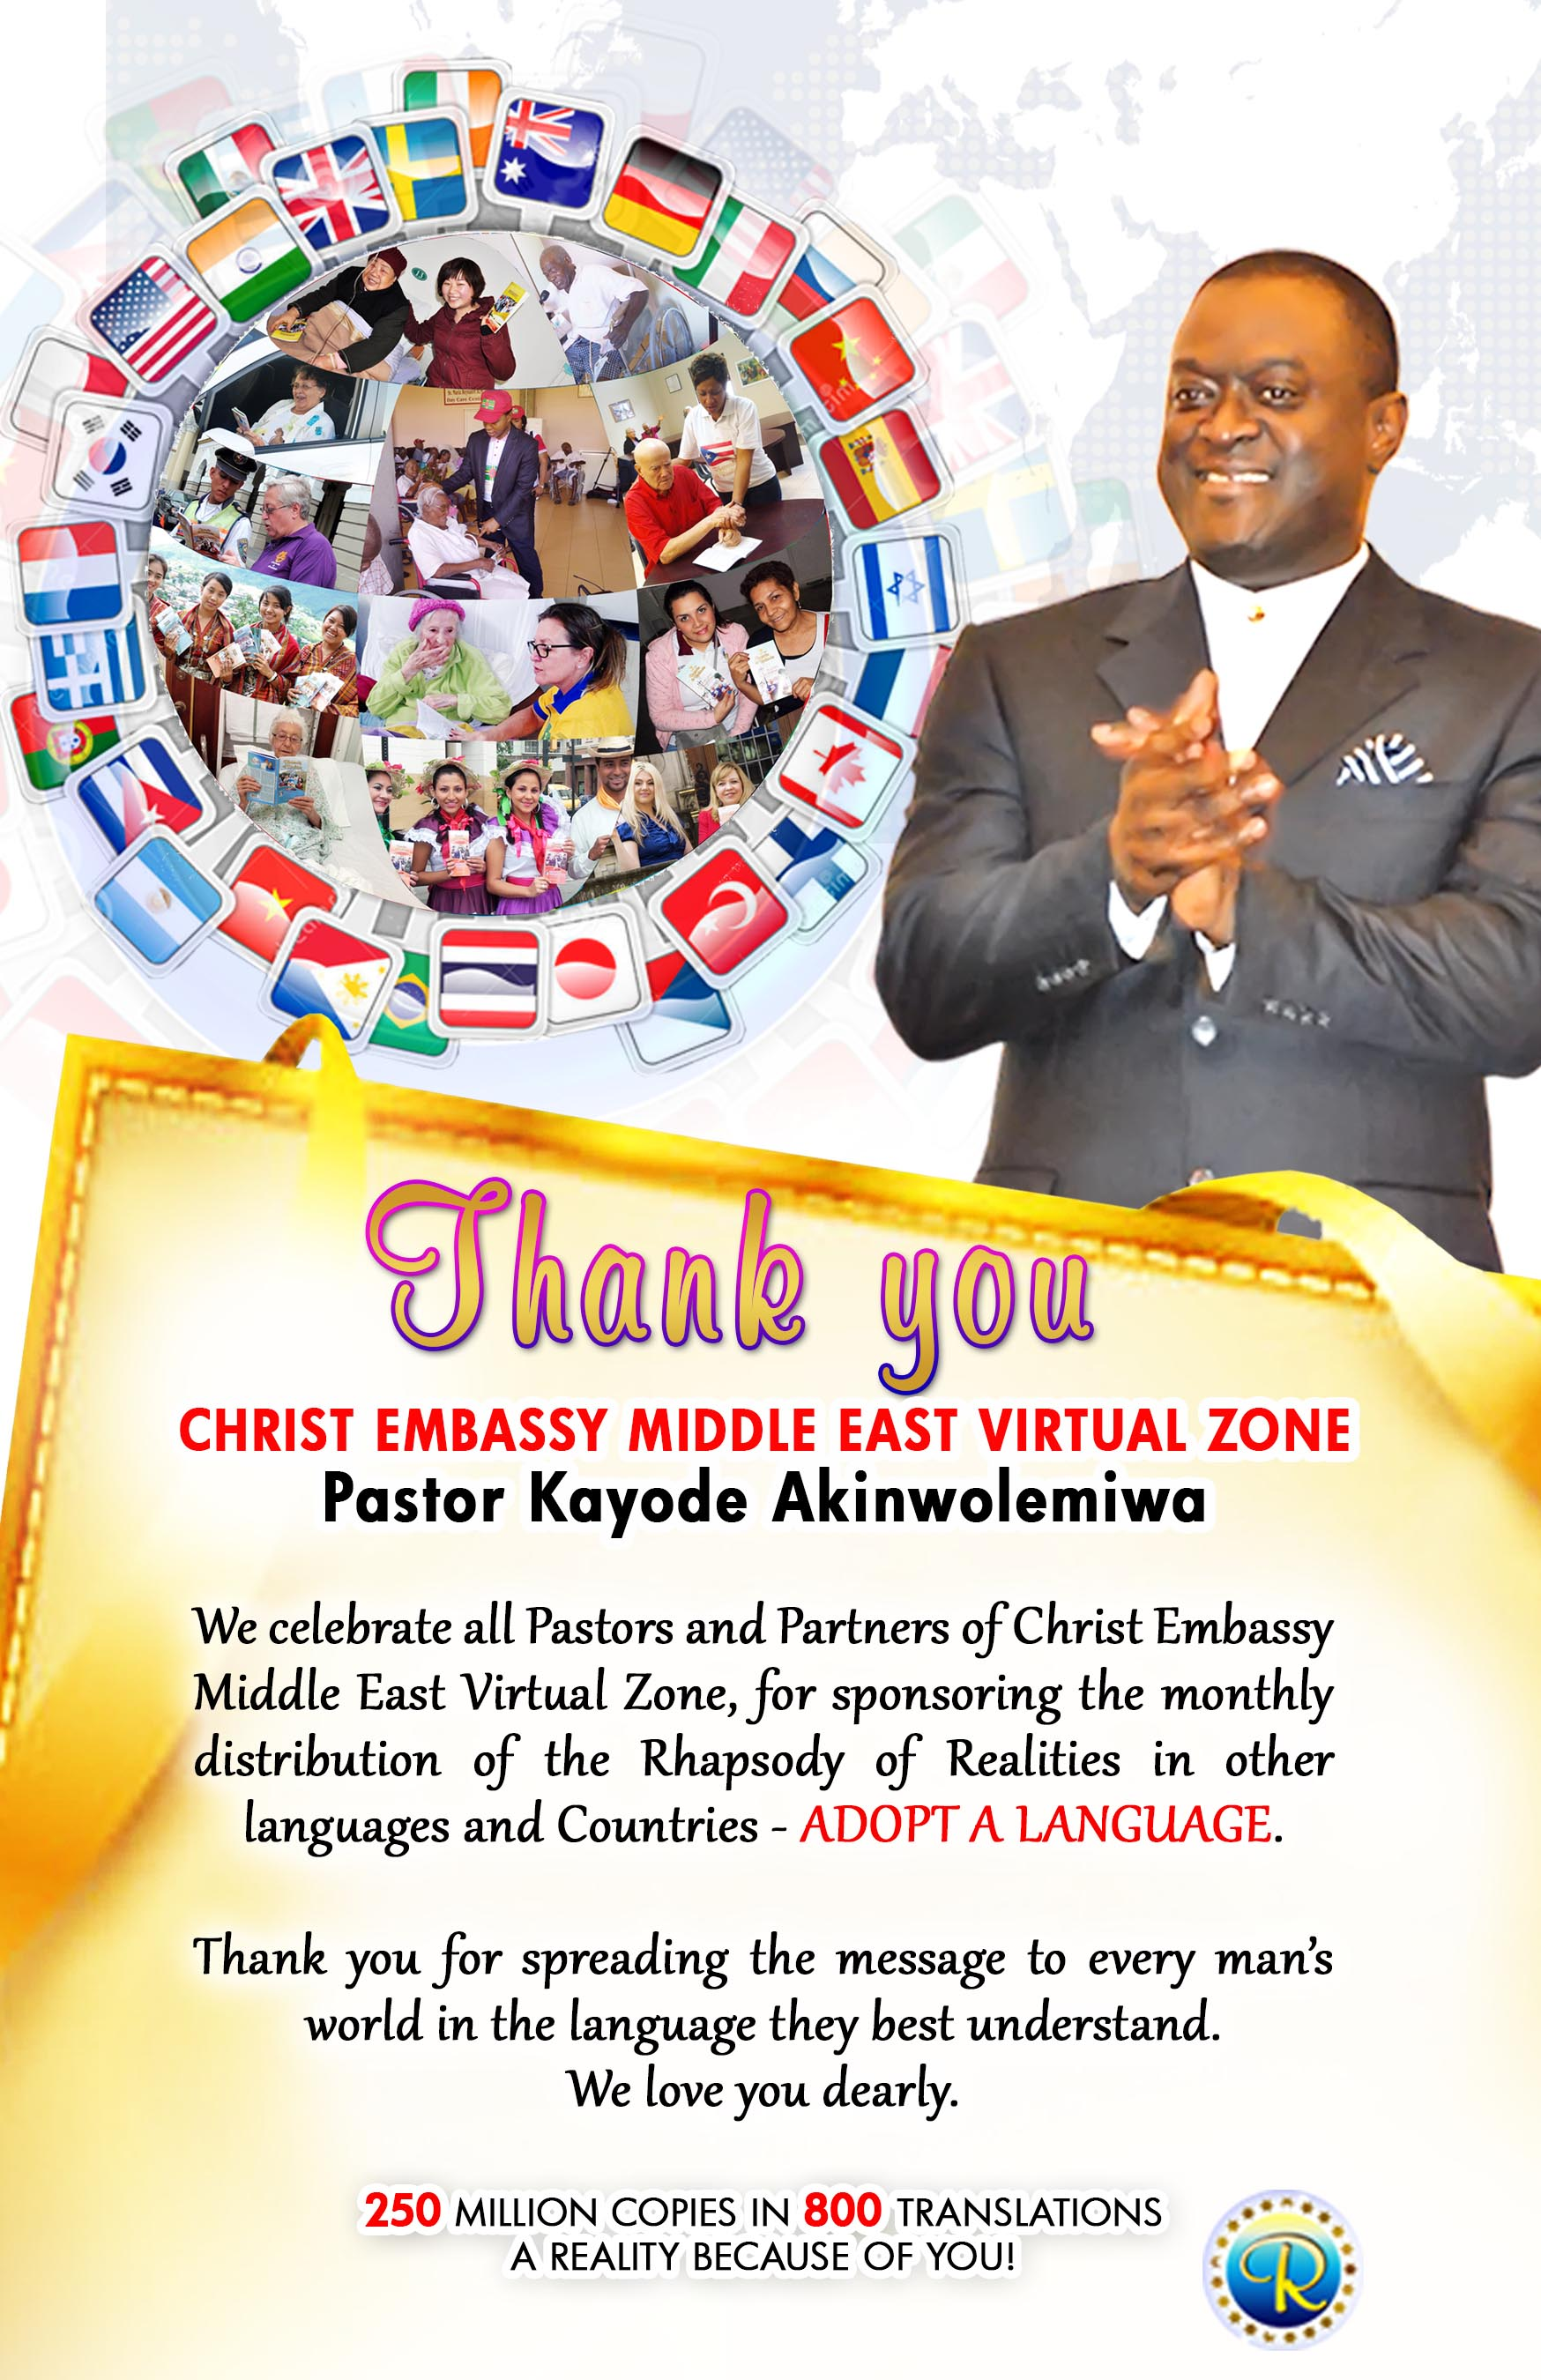 We Celebrate all Pastors and